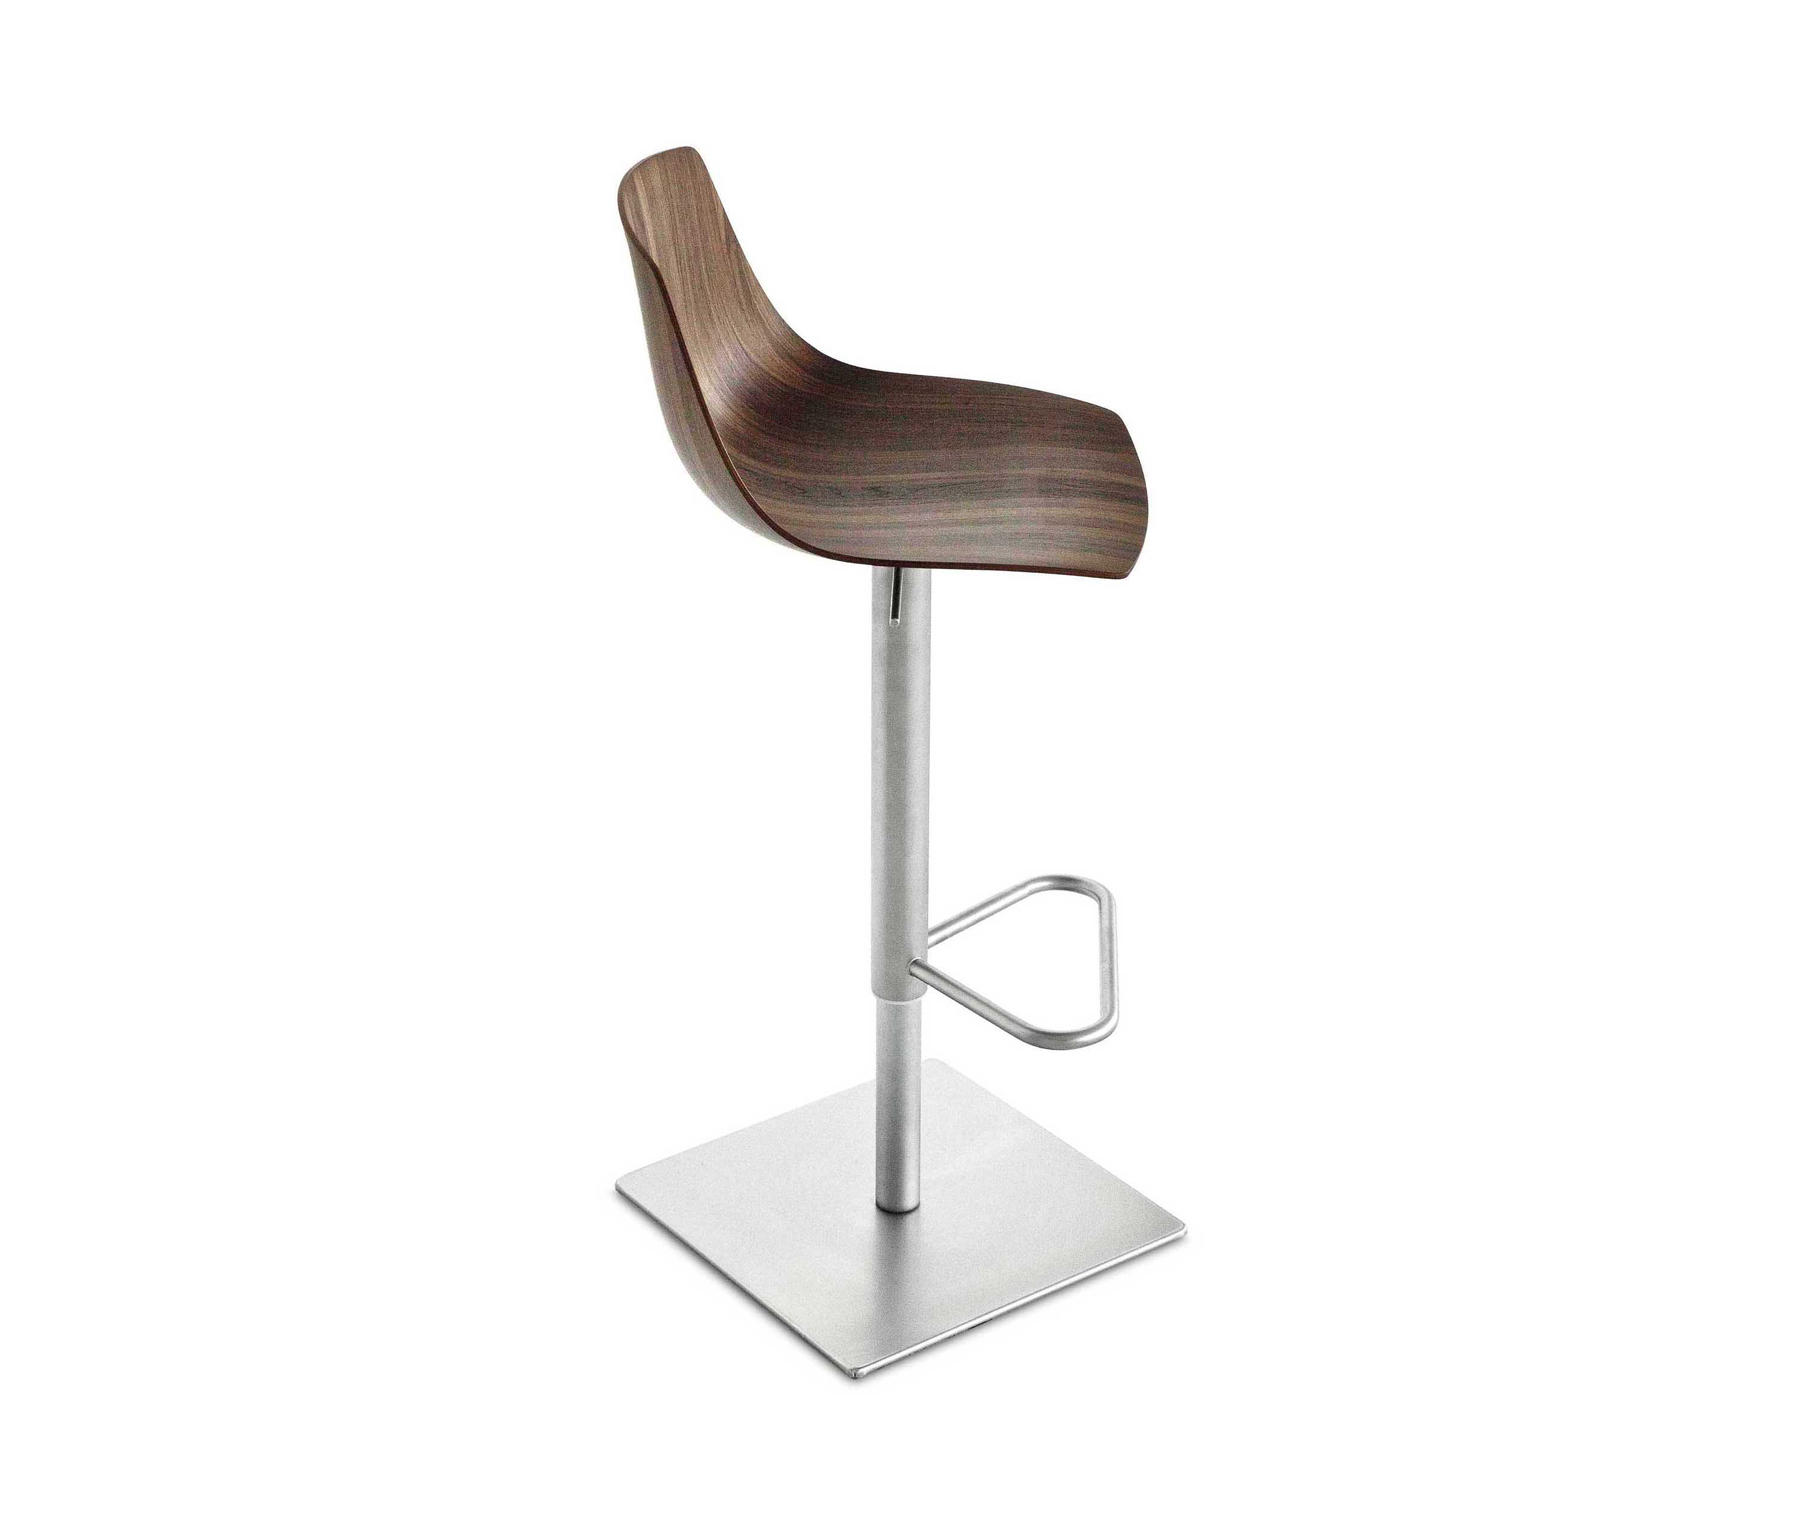 Miunn tabourets de bar de lapalma architonic for Barhocker nussbaum